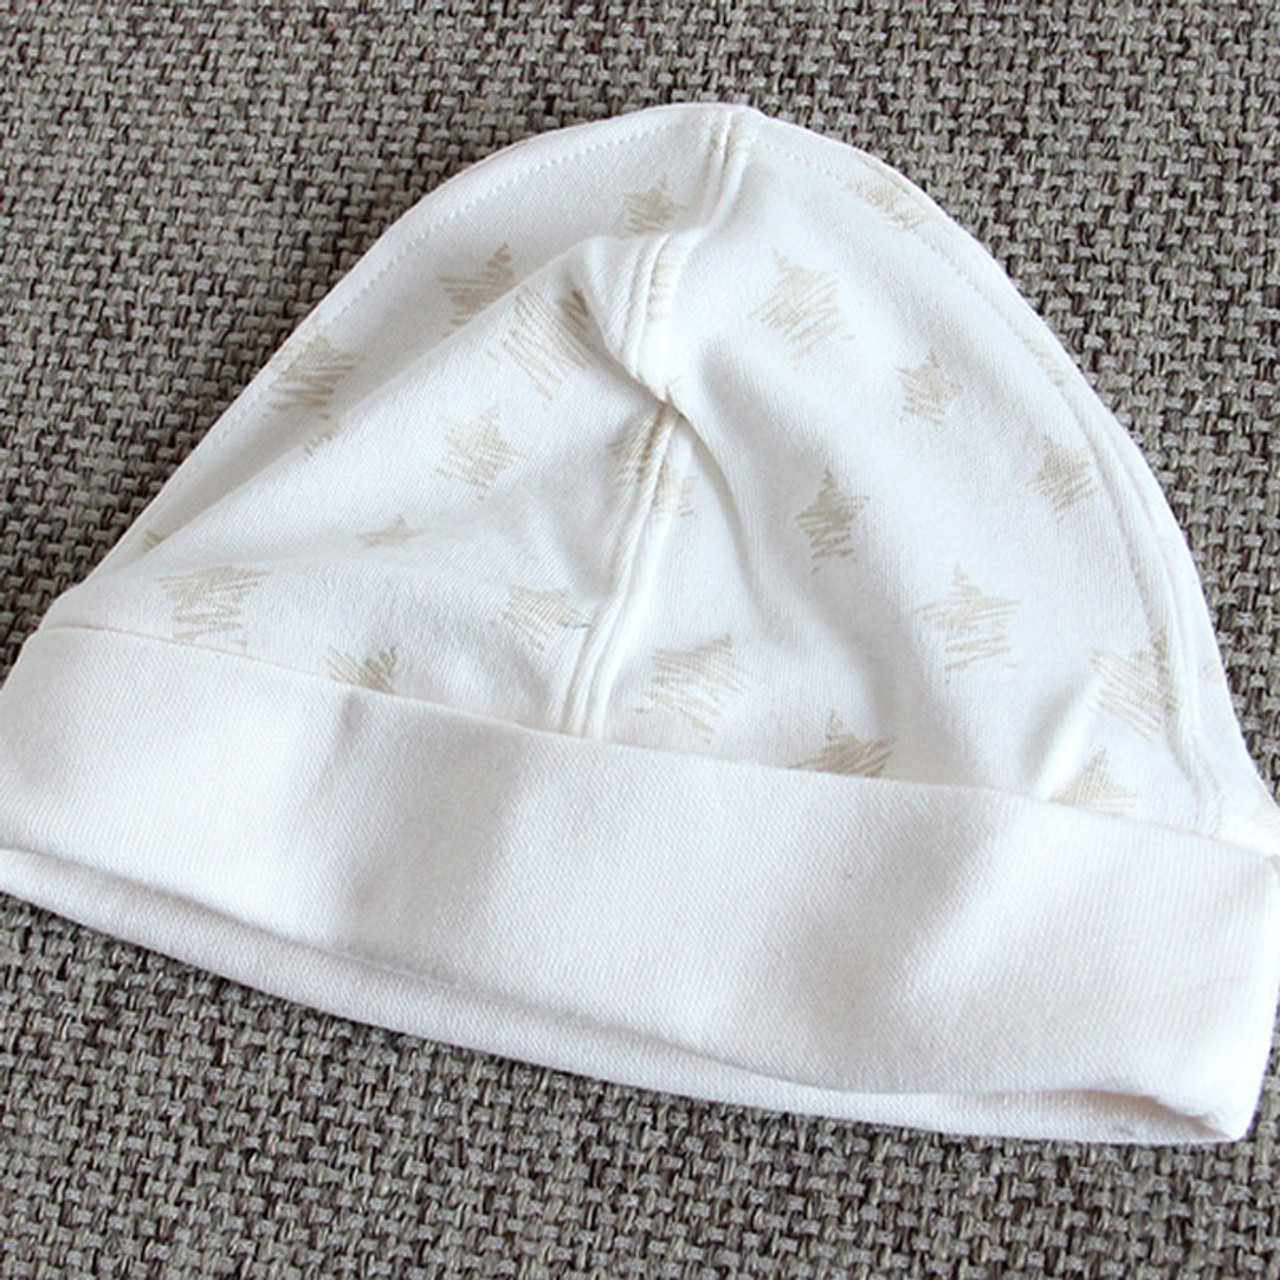 4 Pack 4 Pack 2 Newborn Hats//Bennie//Caps for Baby Girl And Baby Boy